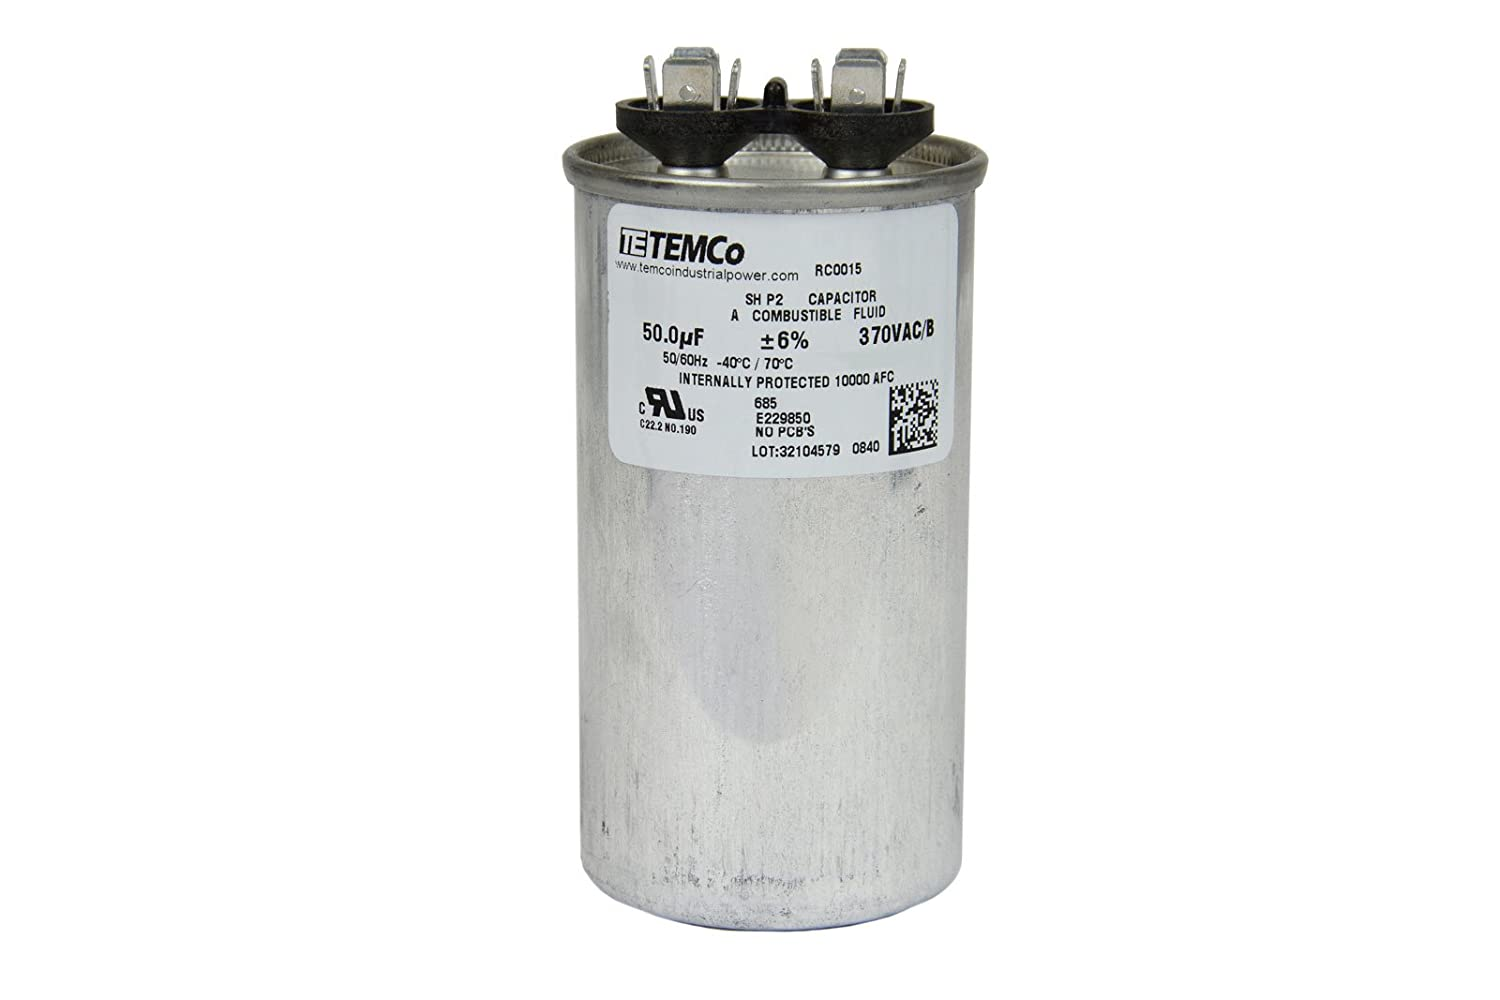 Temco Motor Run Capacitor Rc0015 50 Mfd 370 V Vac Volt Swimming Pool Hayward Pump Wiring Diagram Uf Round Hvac Ac Electric Automotive